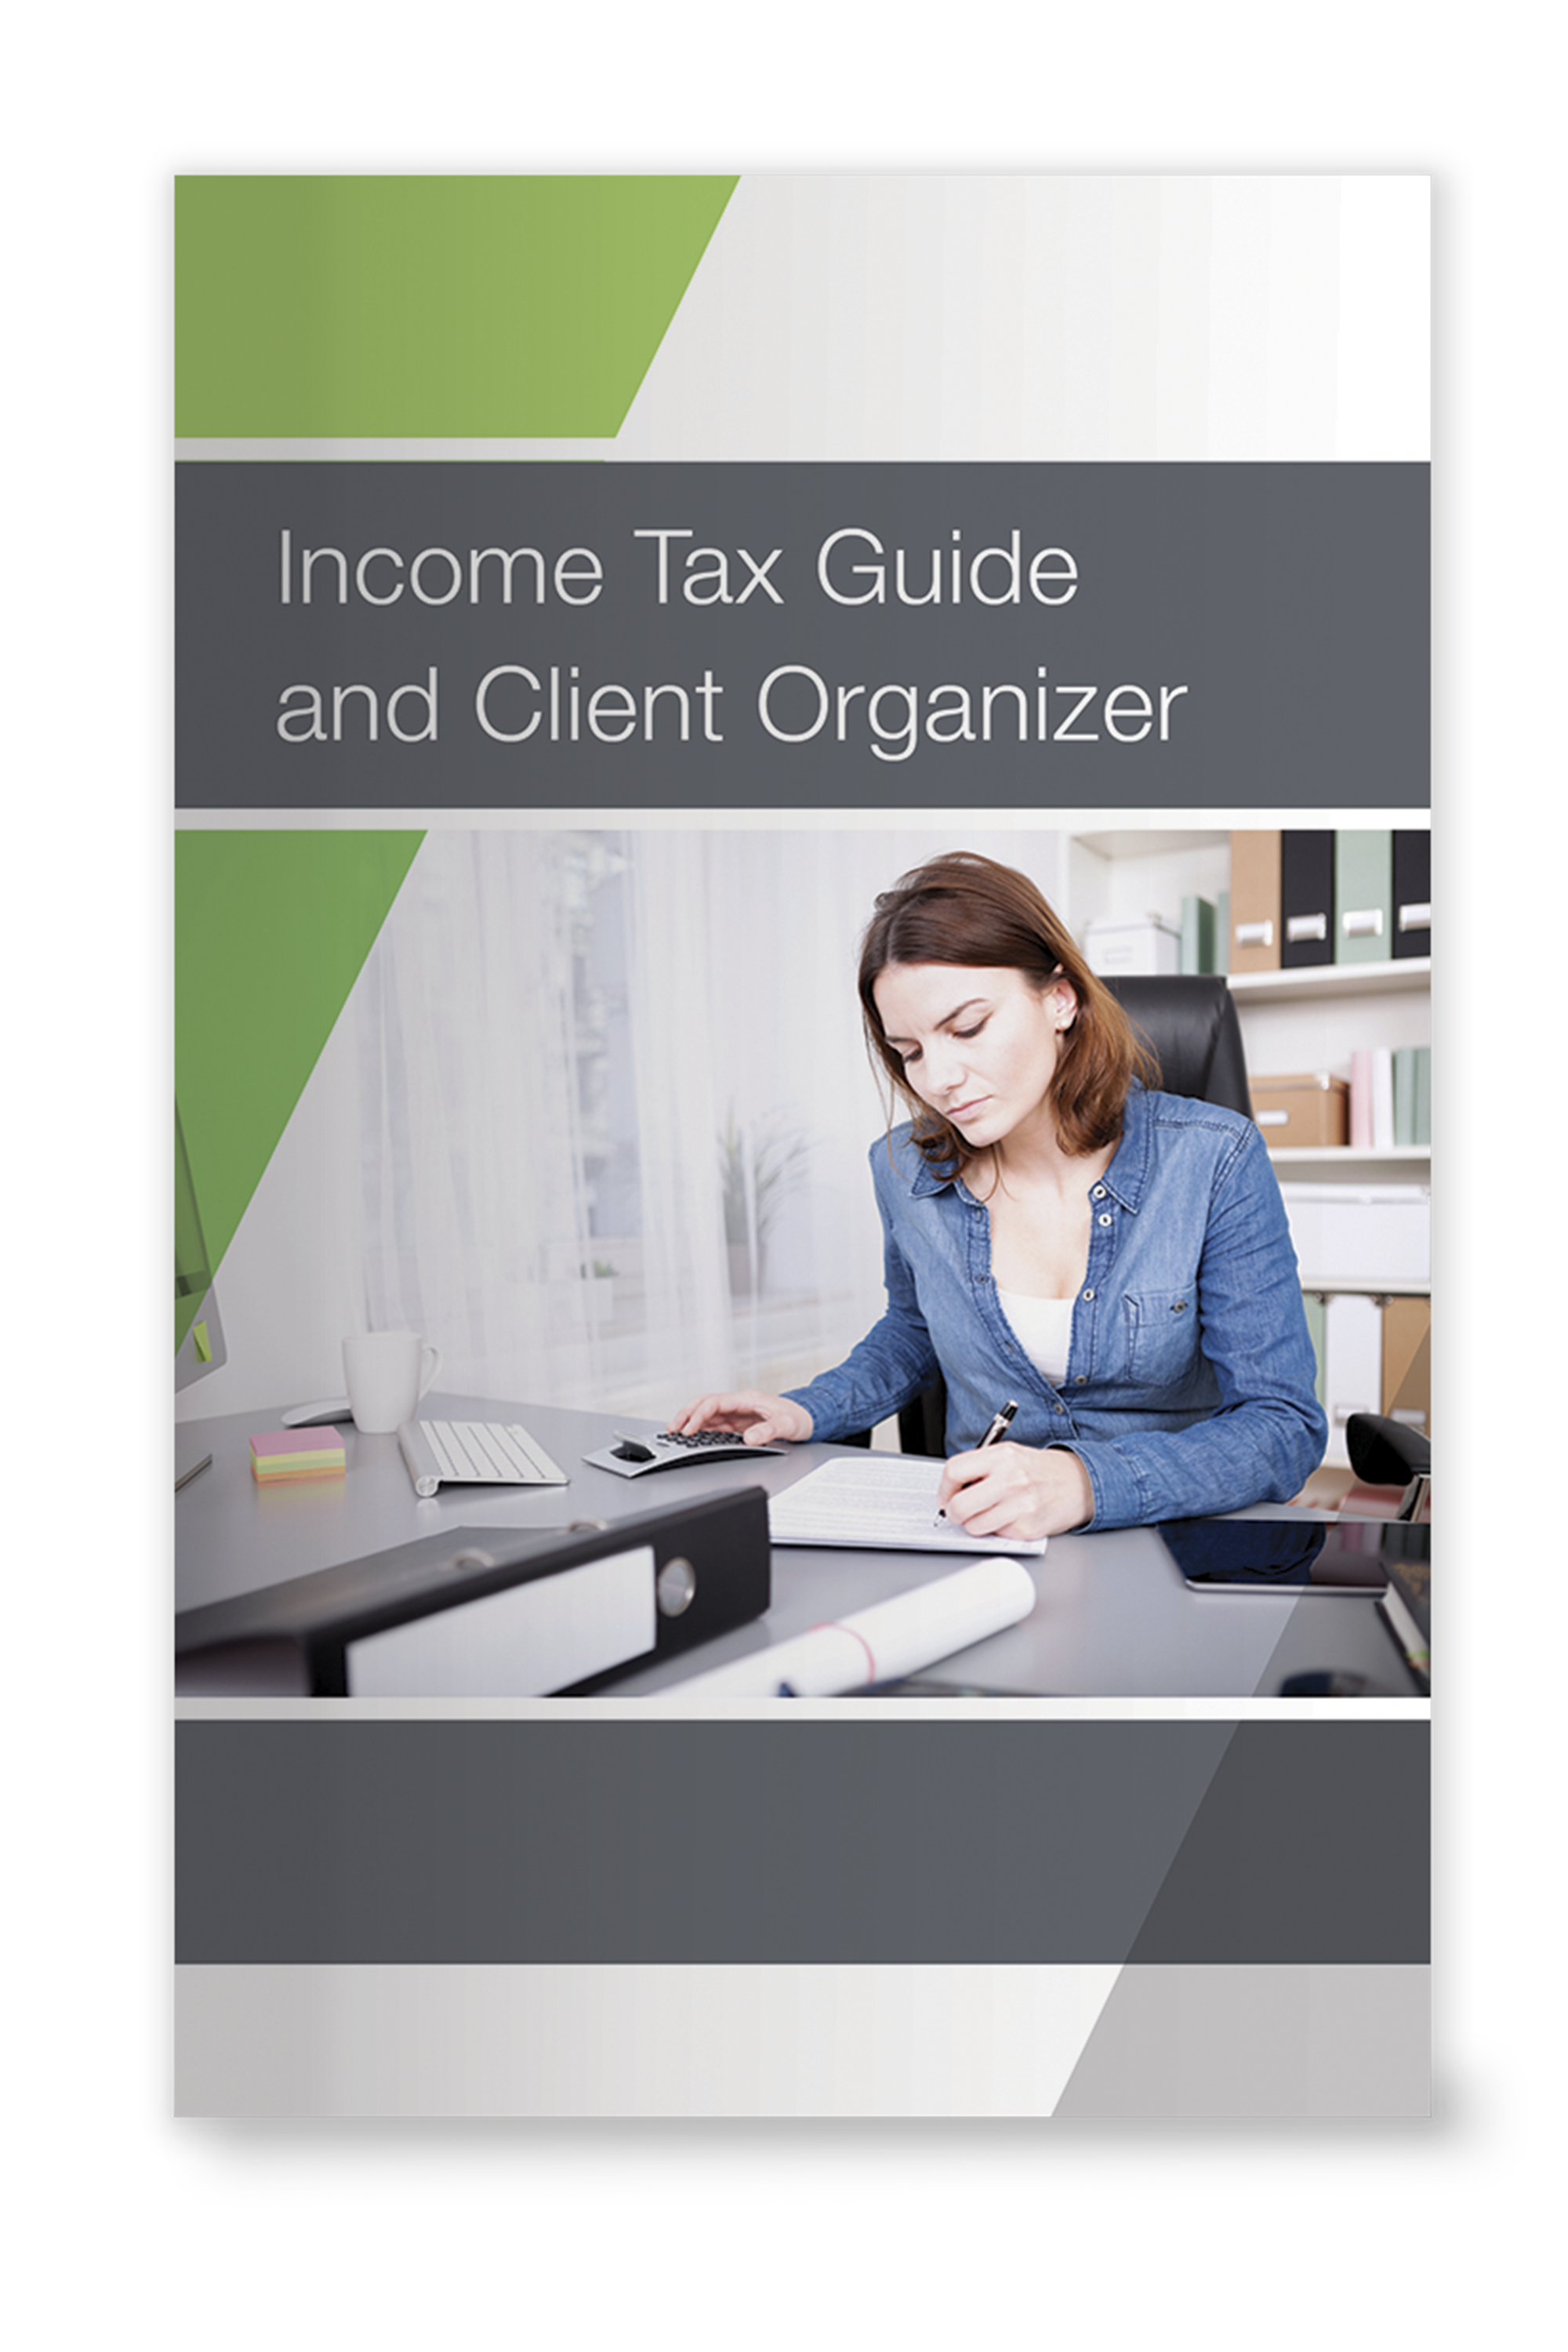 Income Tax Guide & Client Organizer - #620